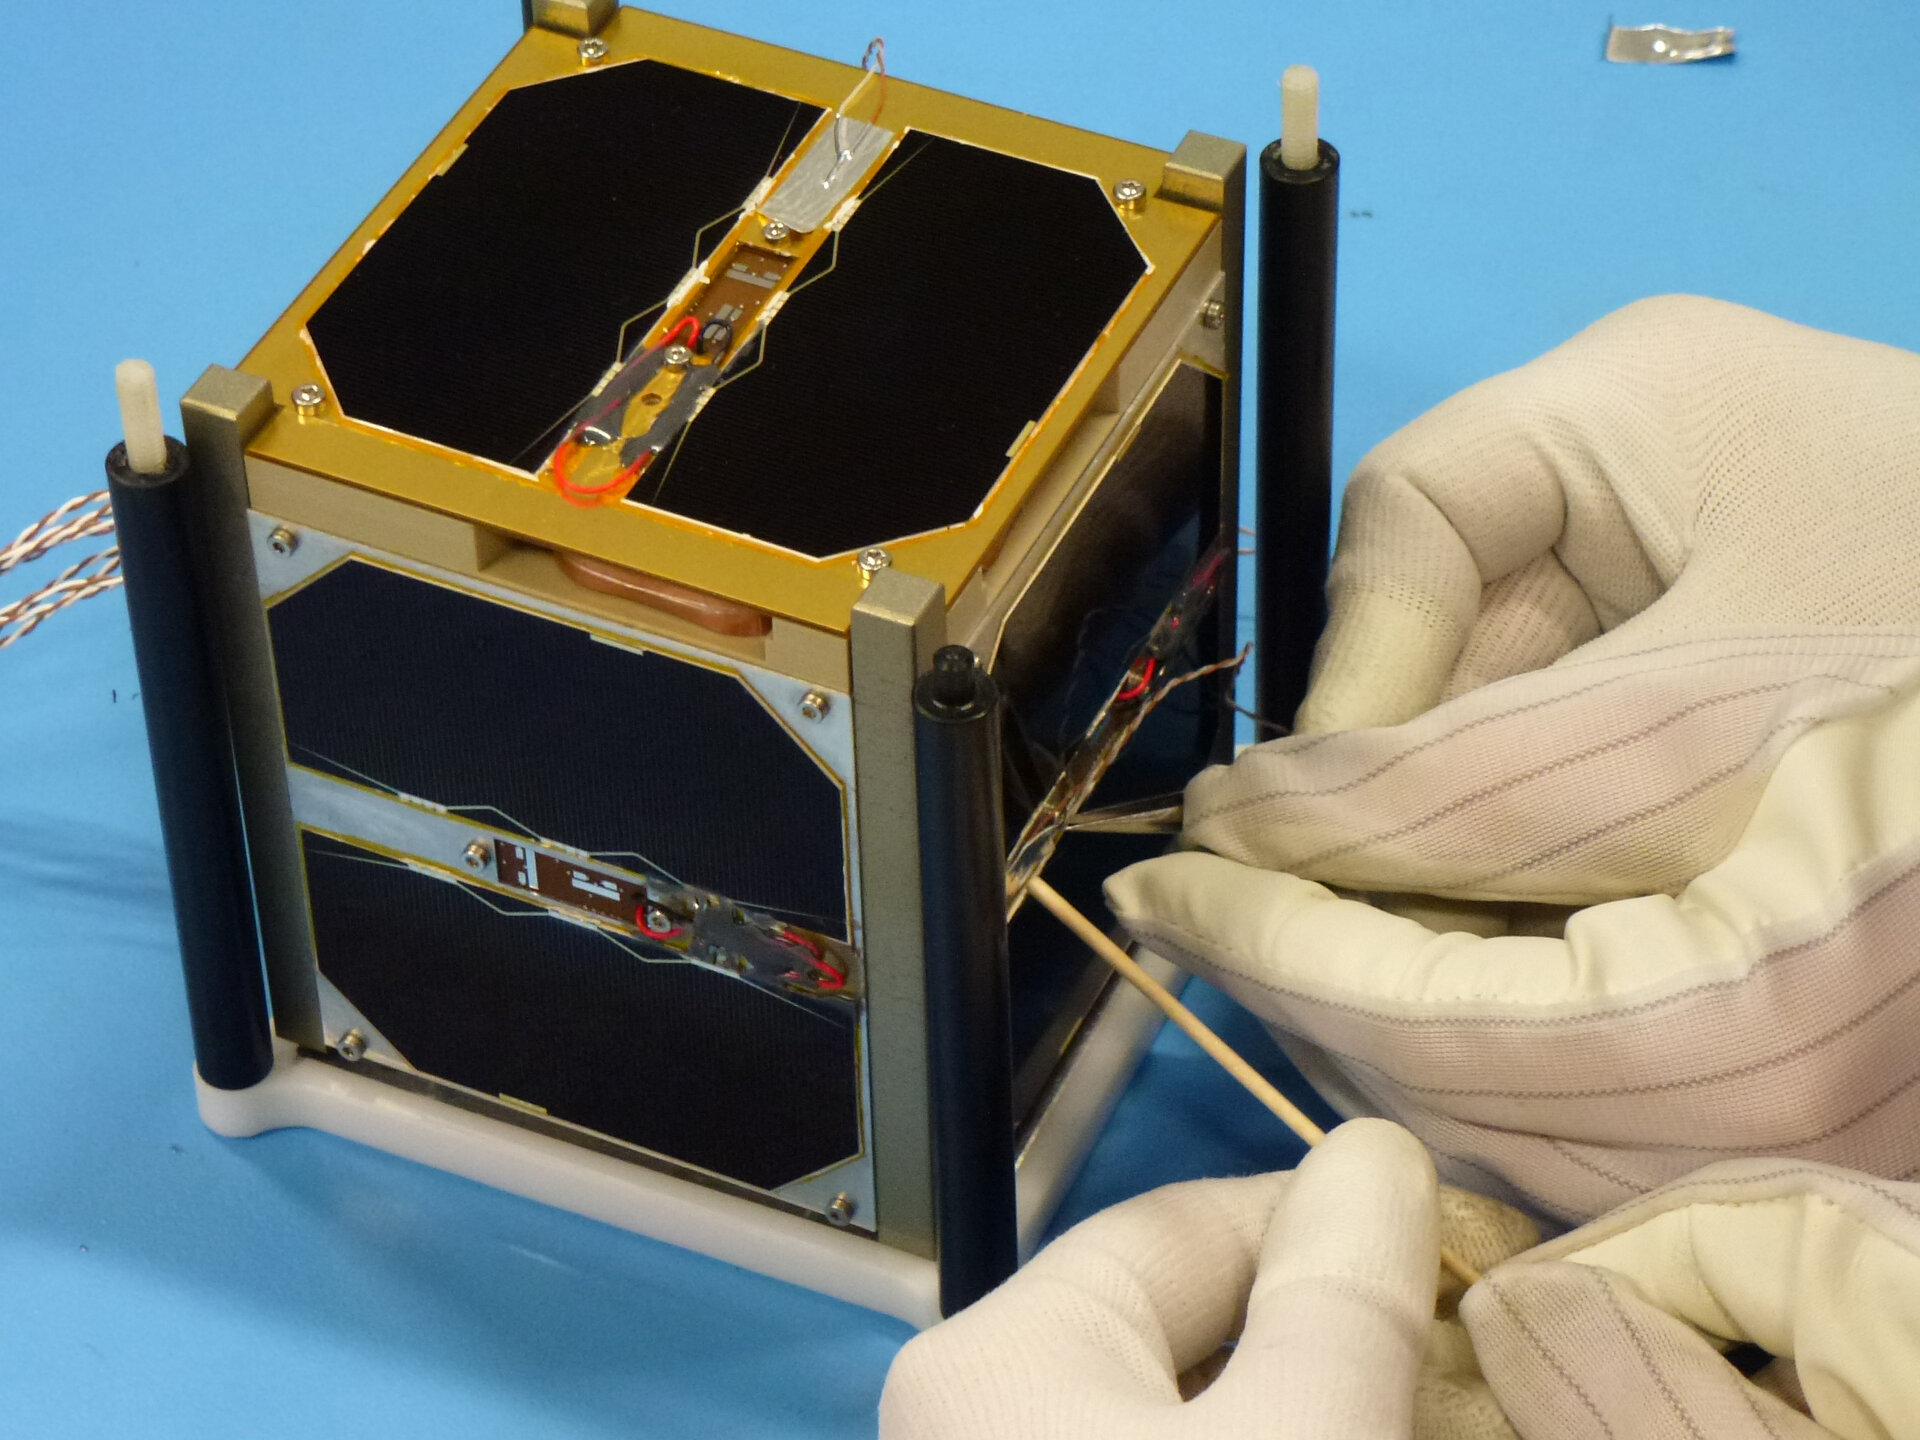 Attaching external thermocouples to CubeSat